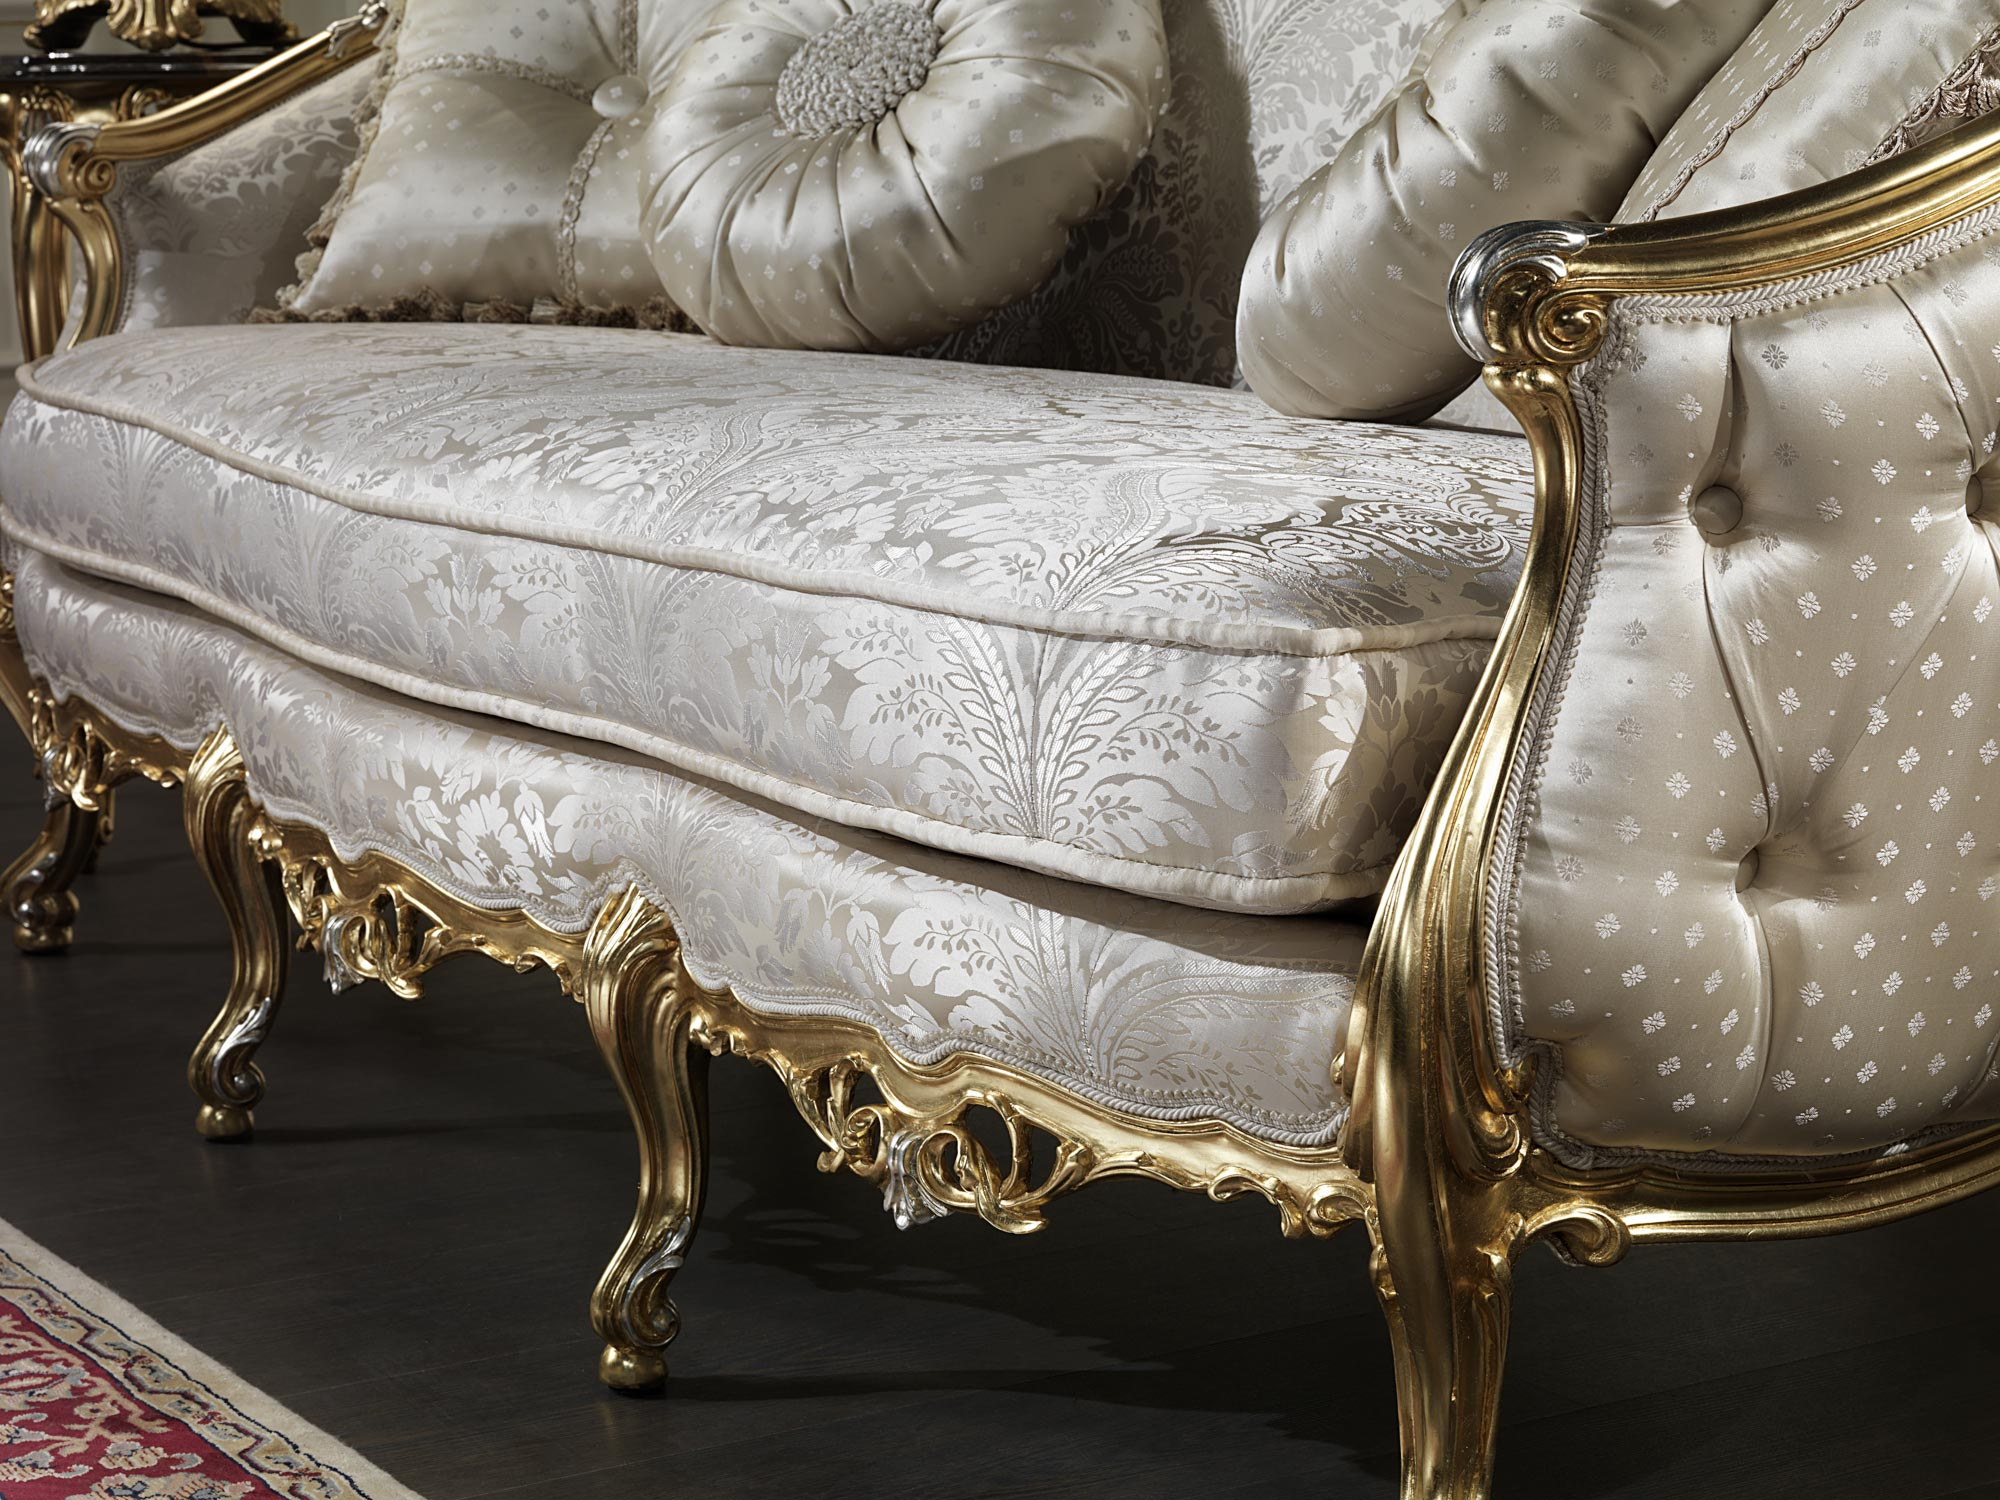 Venezia luxury classic sofa vimercati classic furniture for Classic furniture